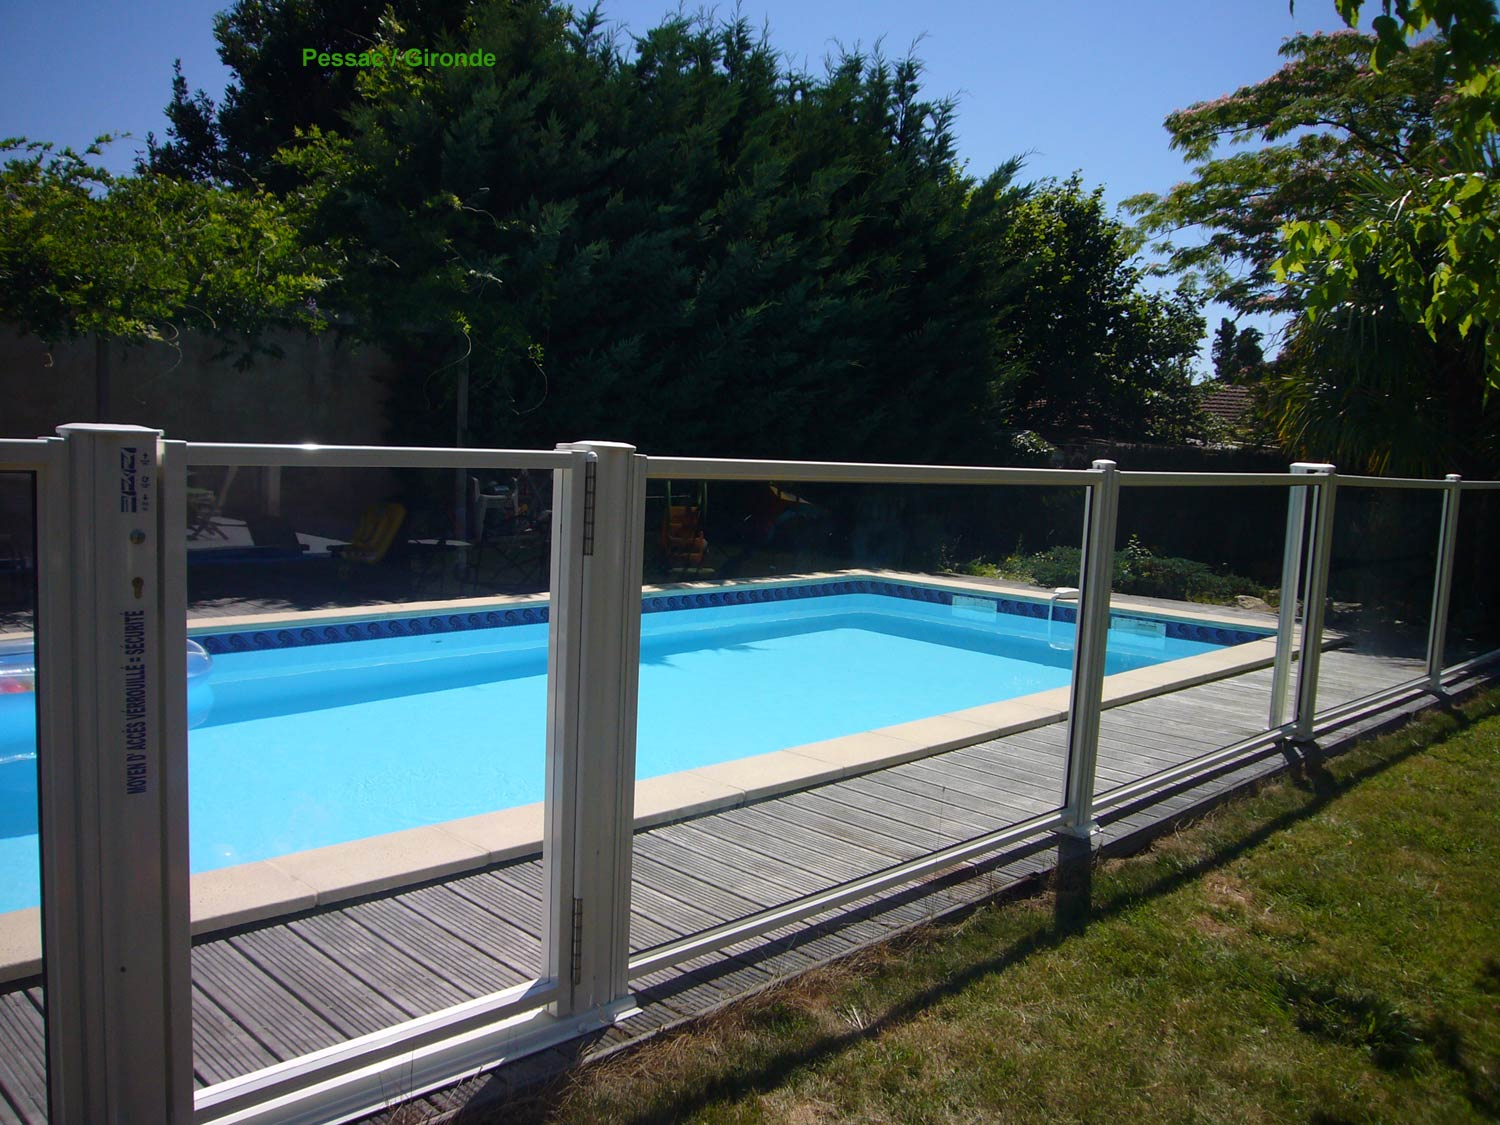 Quelques liens utiles for Barrieres de protection pour piscine